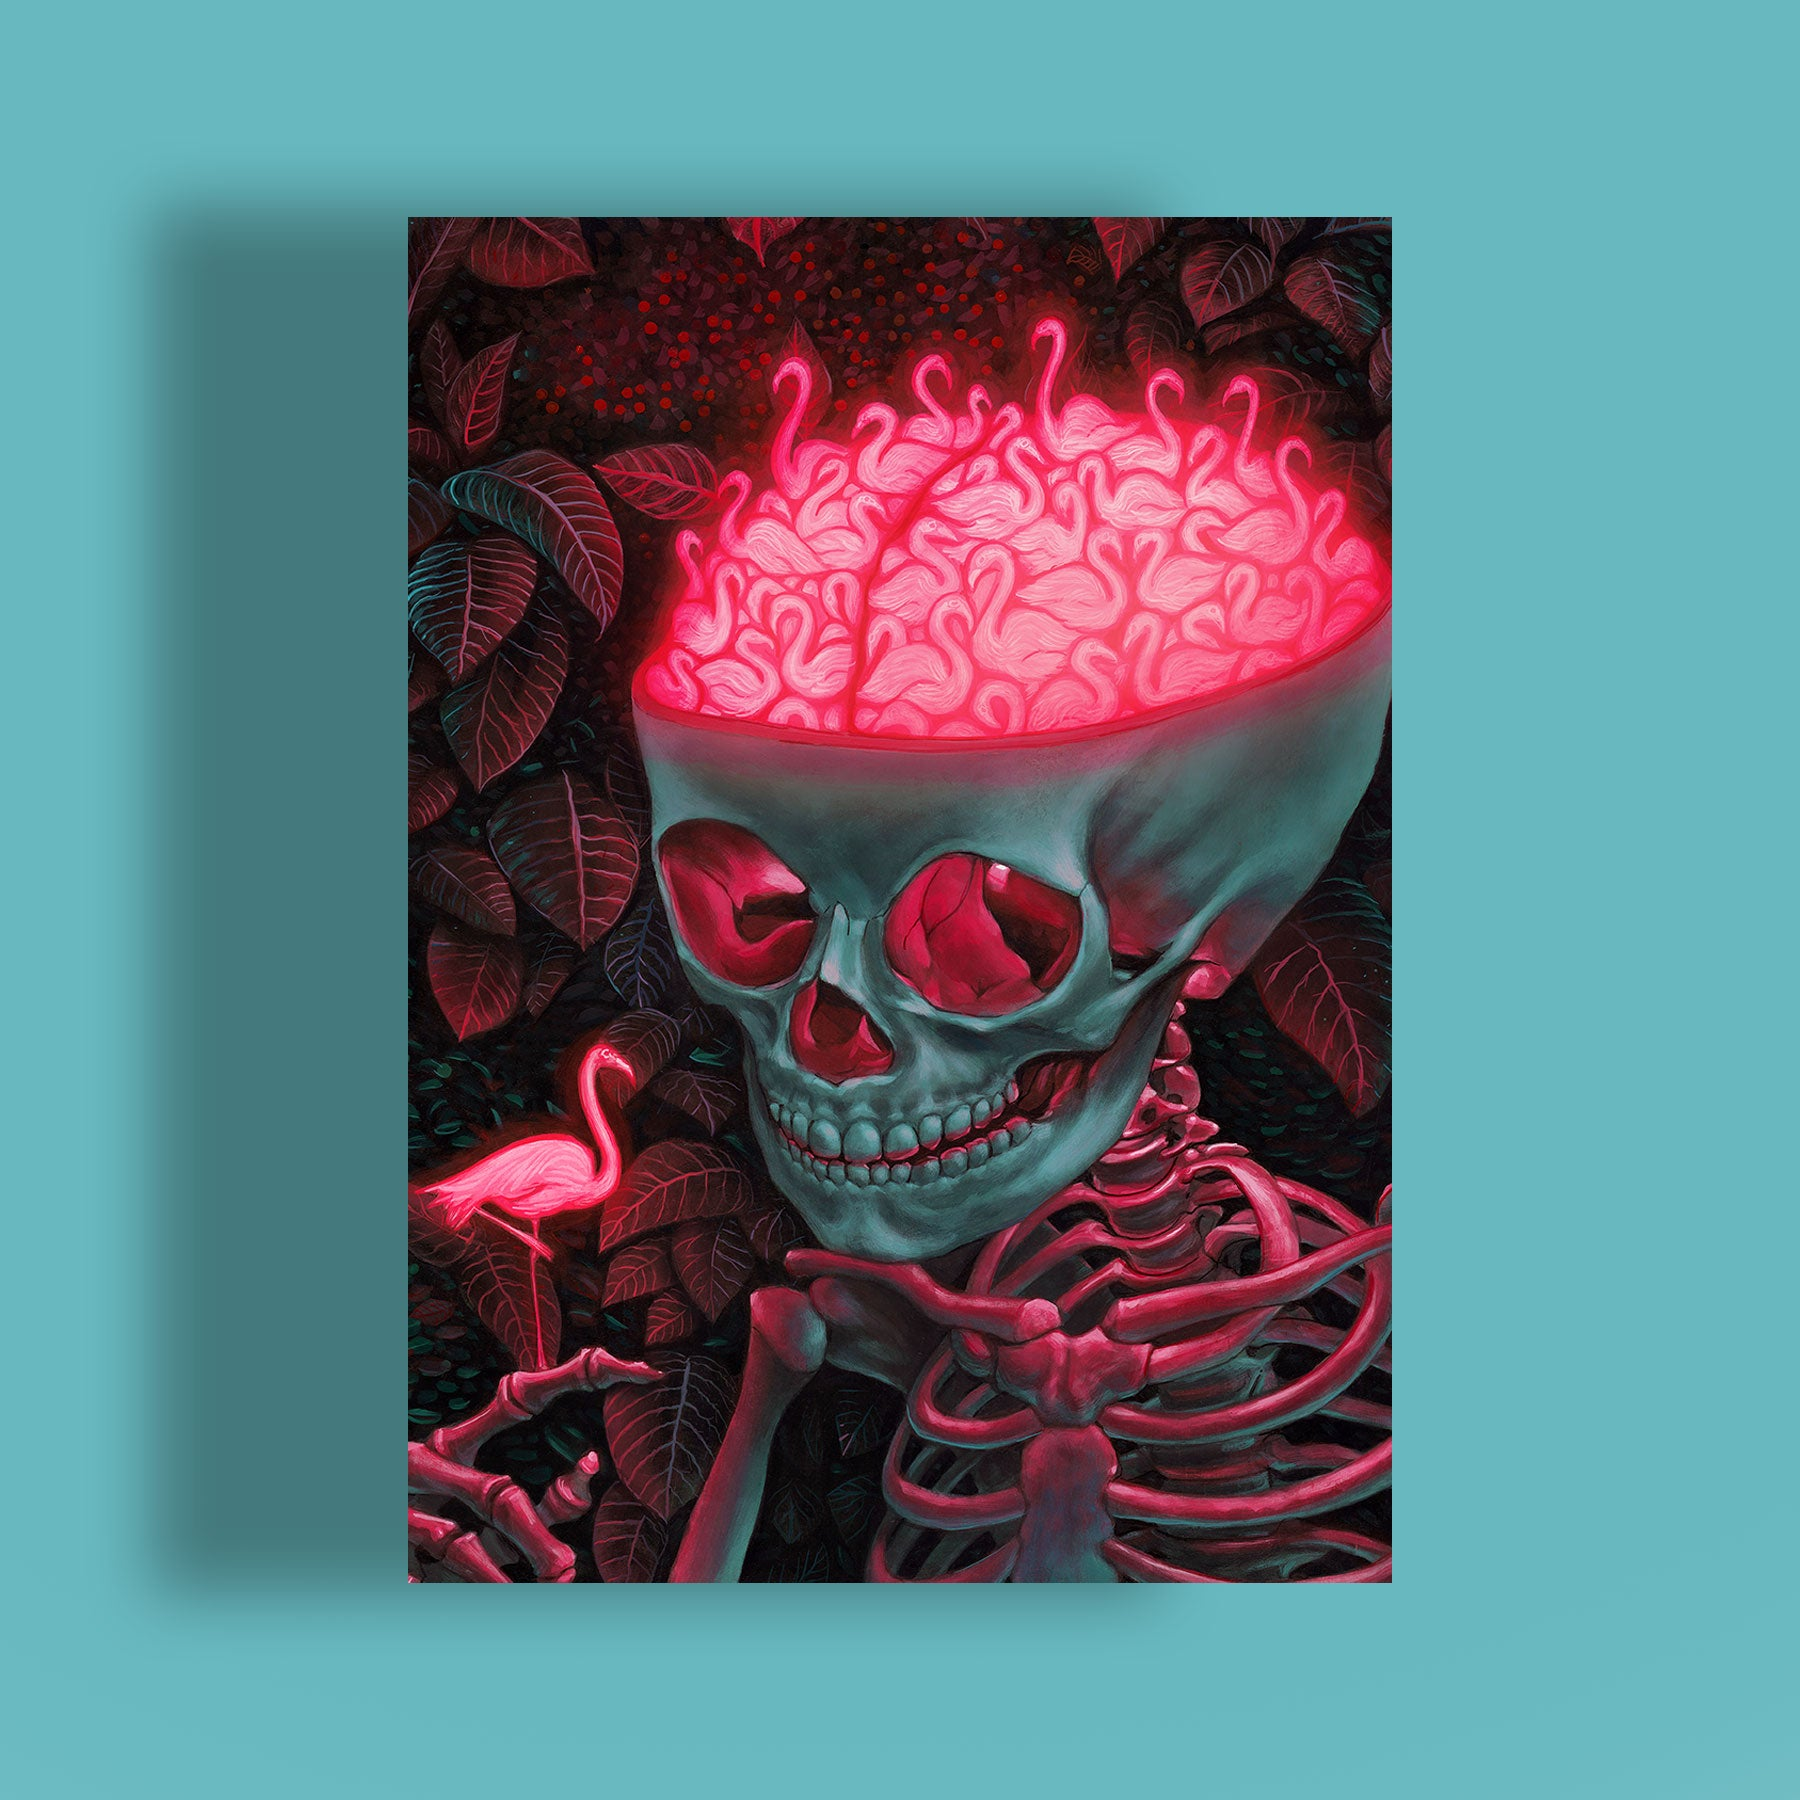 Jigsaw puzzle of a skull by Casey Weldon